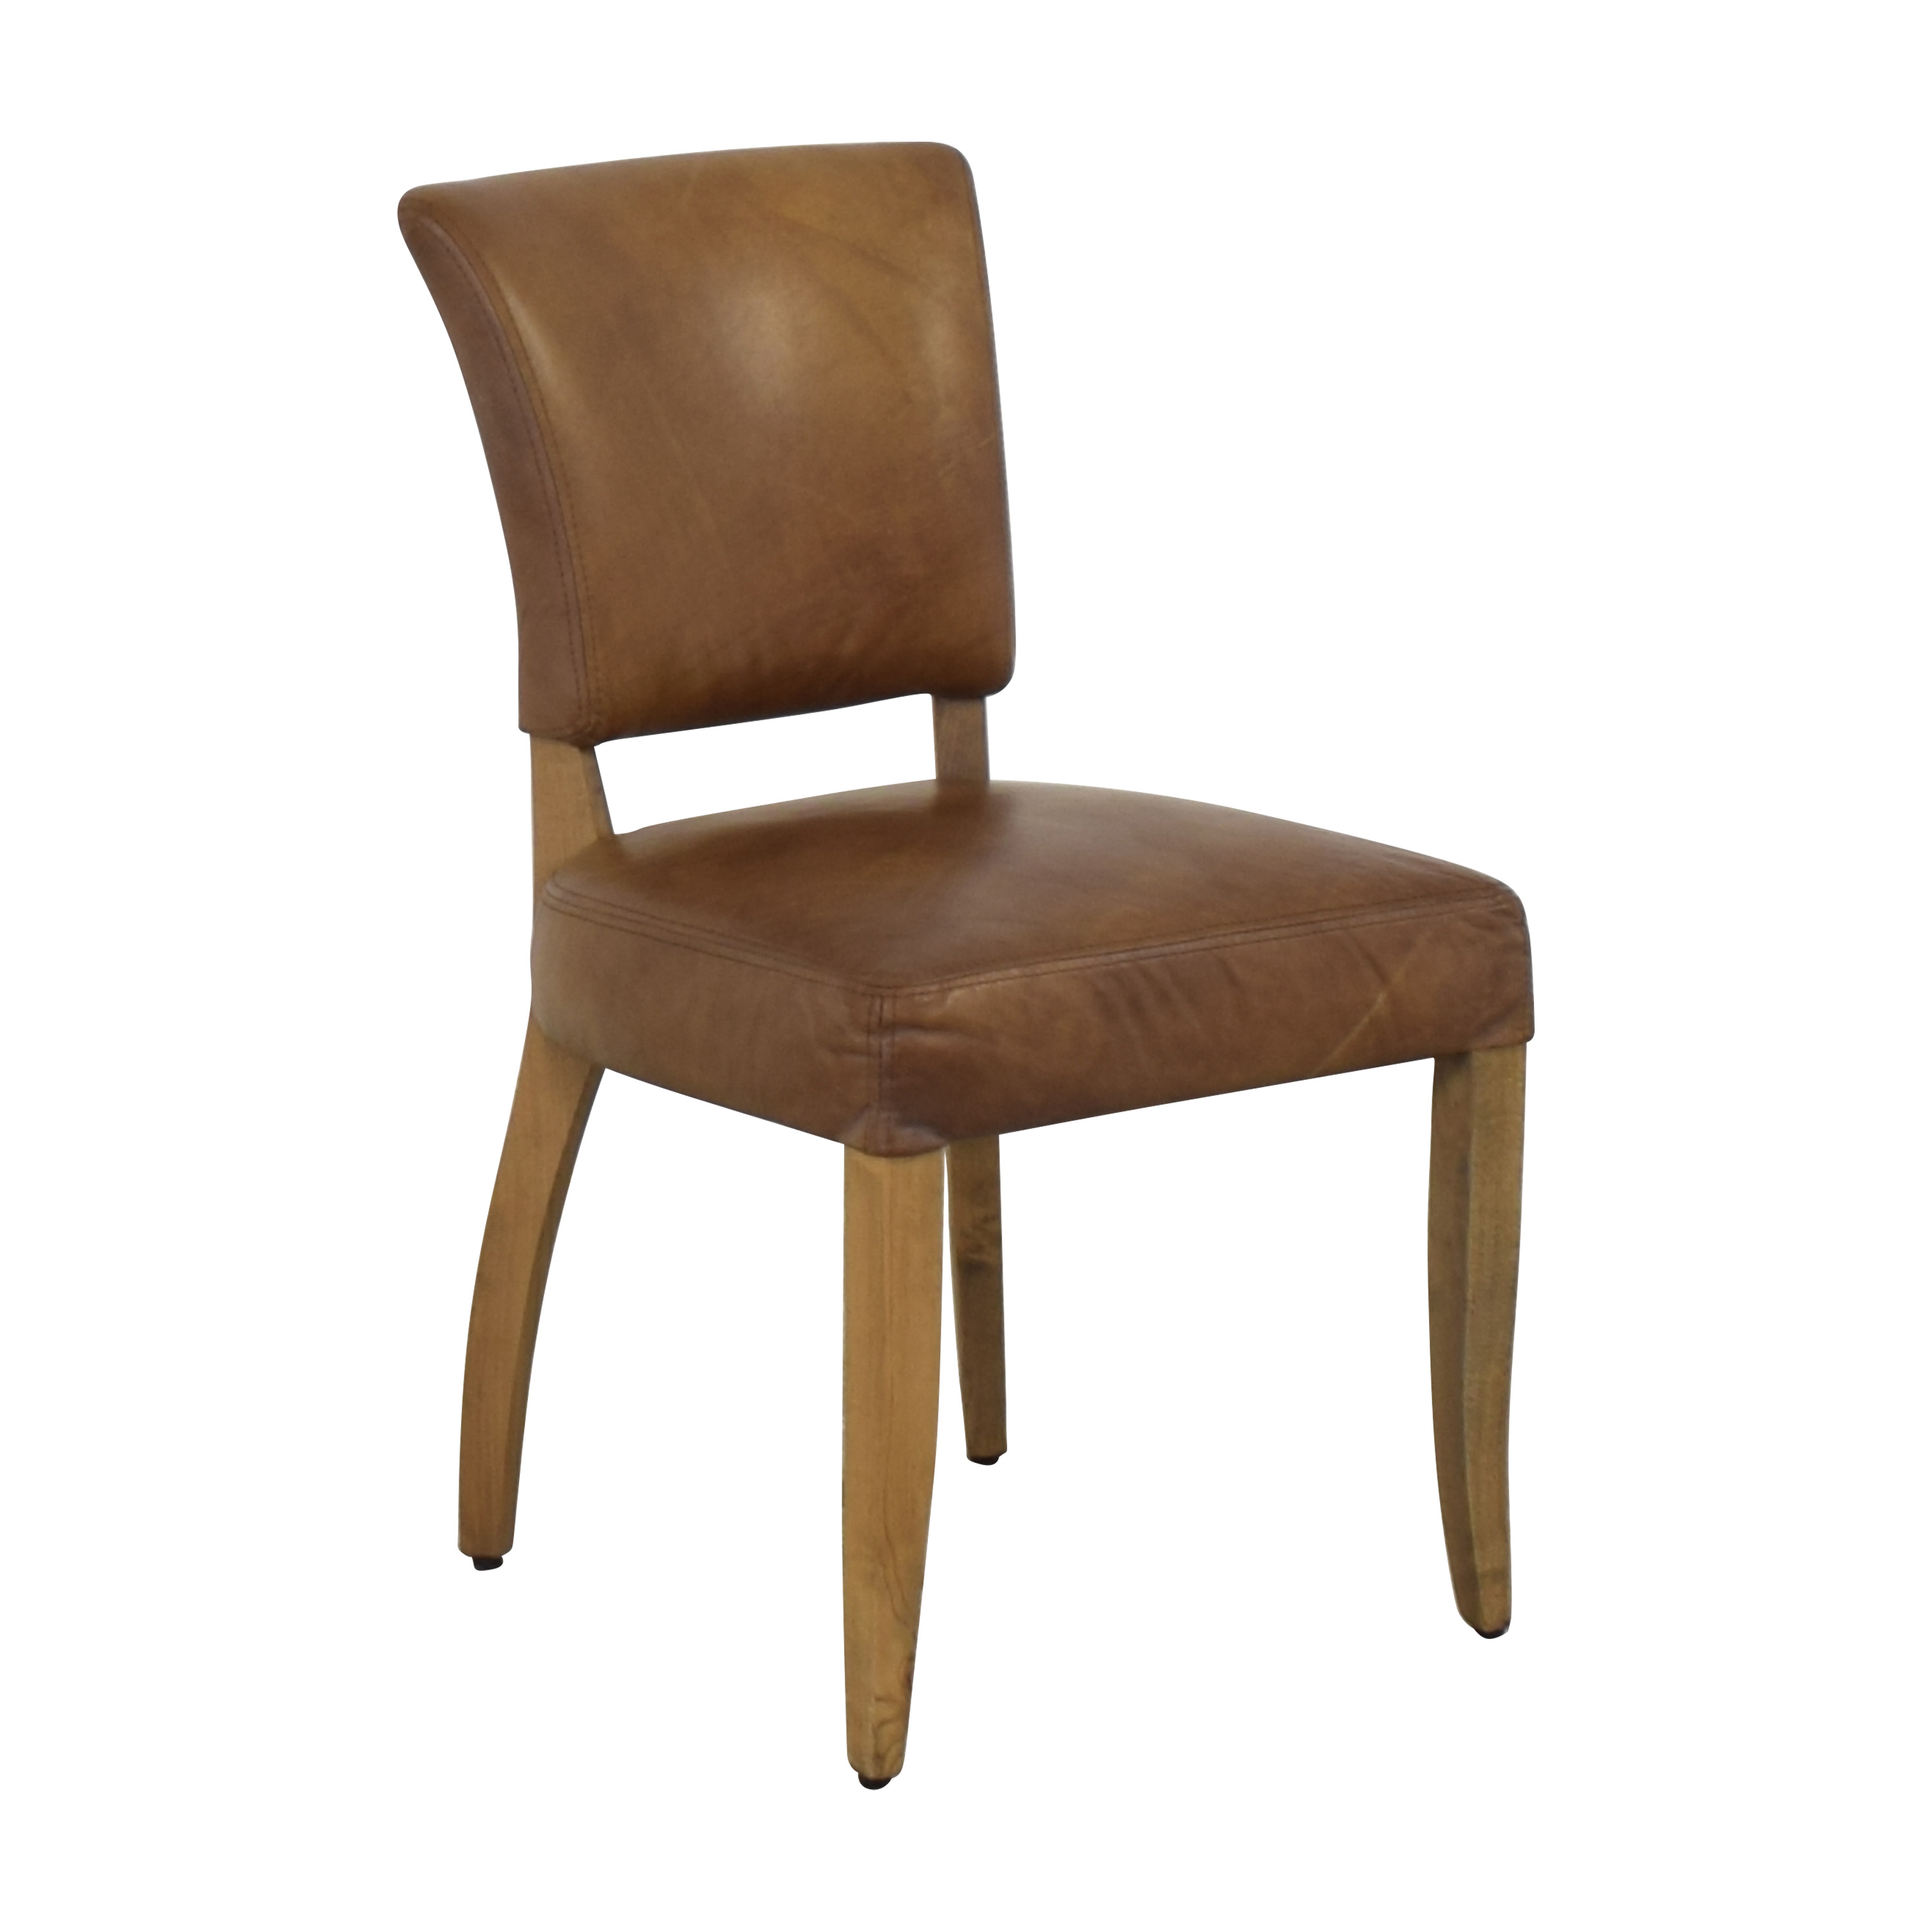 Restoration Hardware Restoration Hardware Adele Leather Side Chair ma